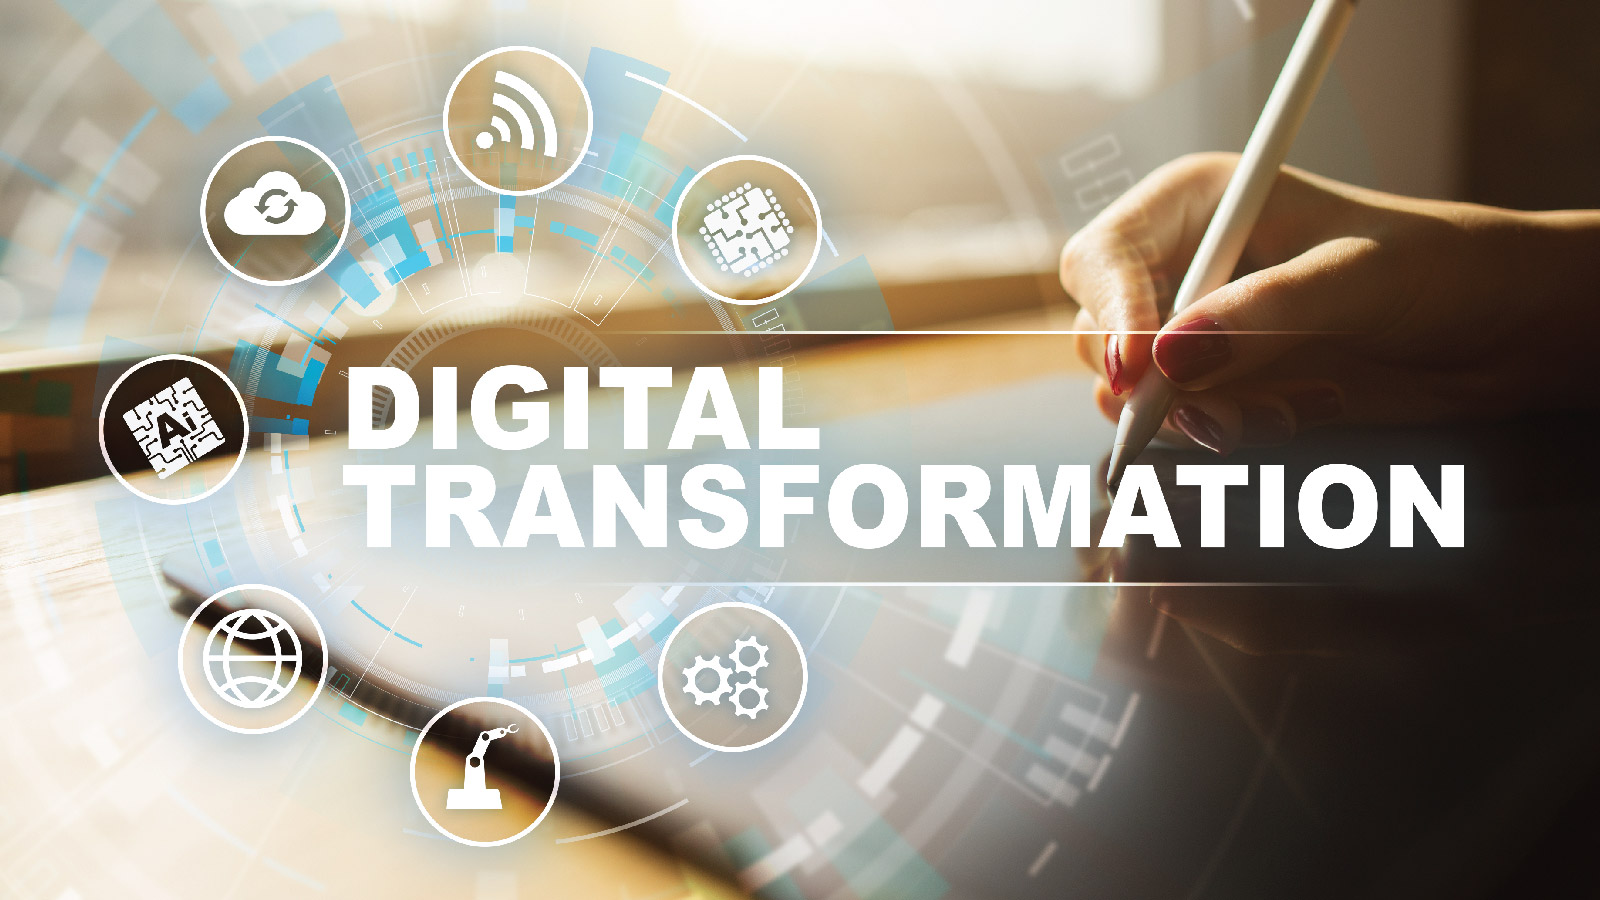 Digital Transformation Marketing is important to many Hardware and Software Companies